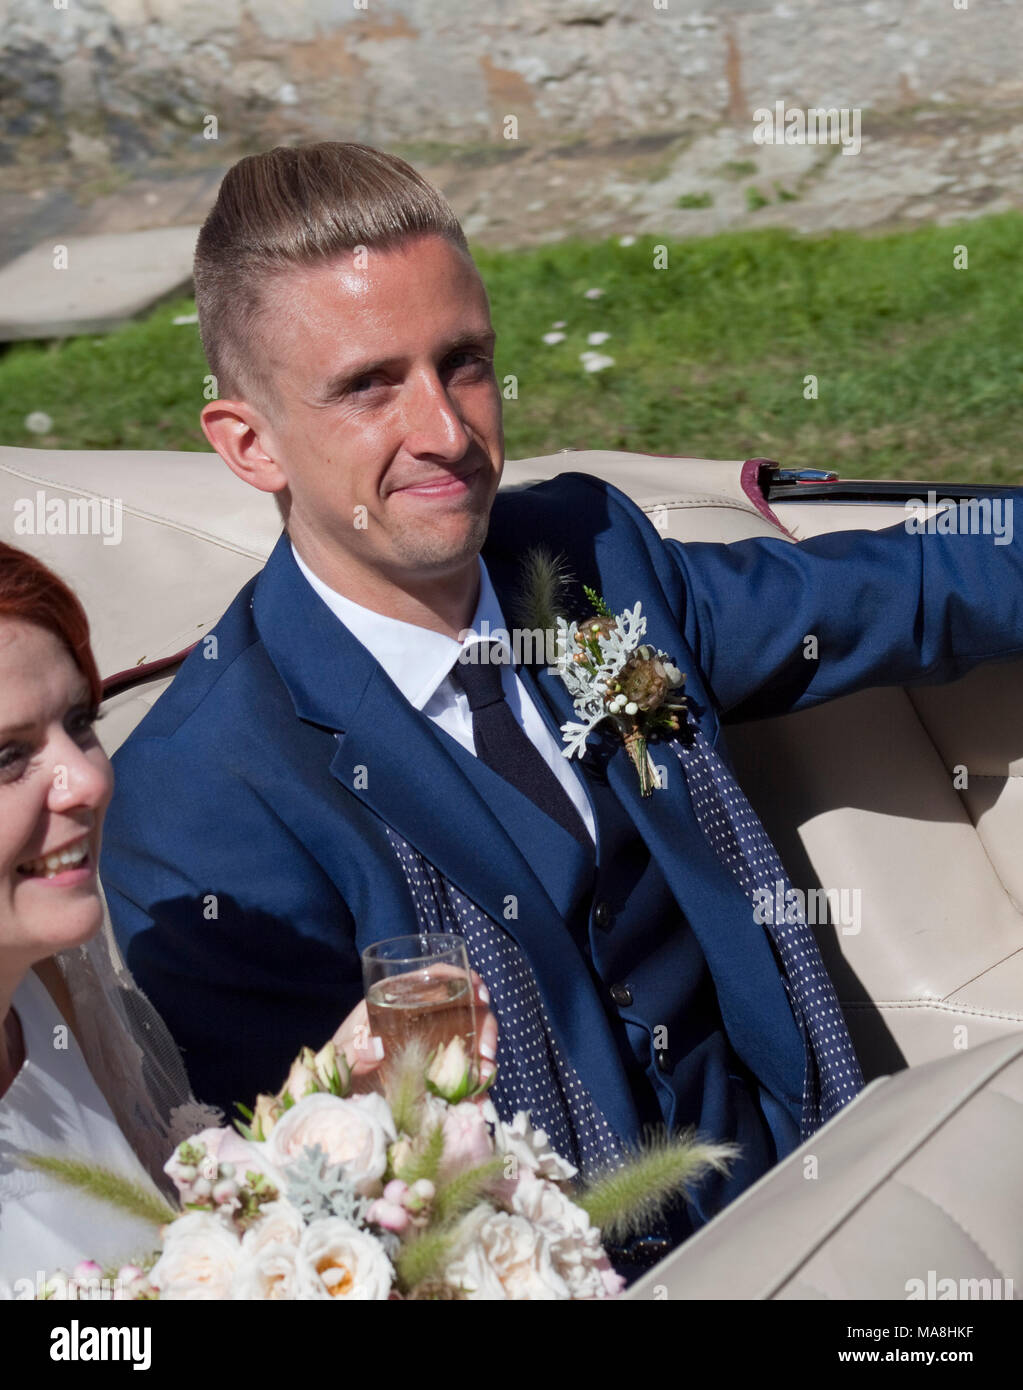 Newly married groom leaving in an open car and a blue suit - Stock Image